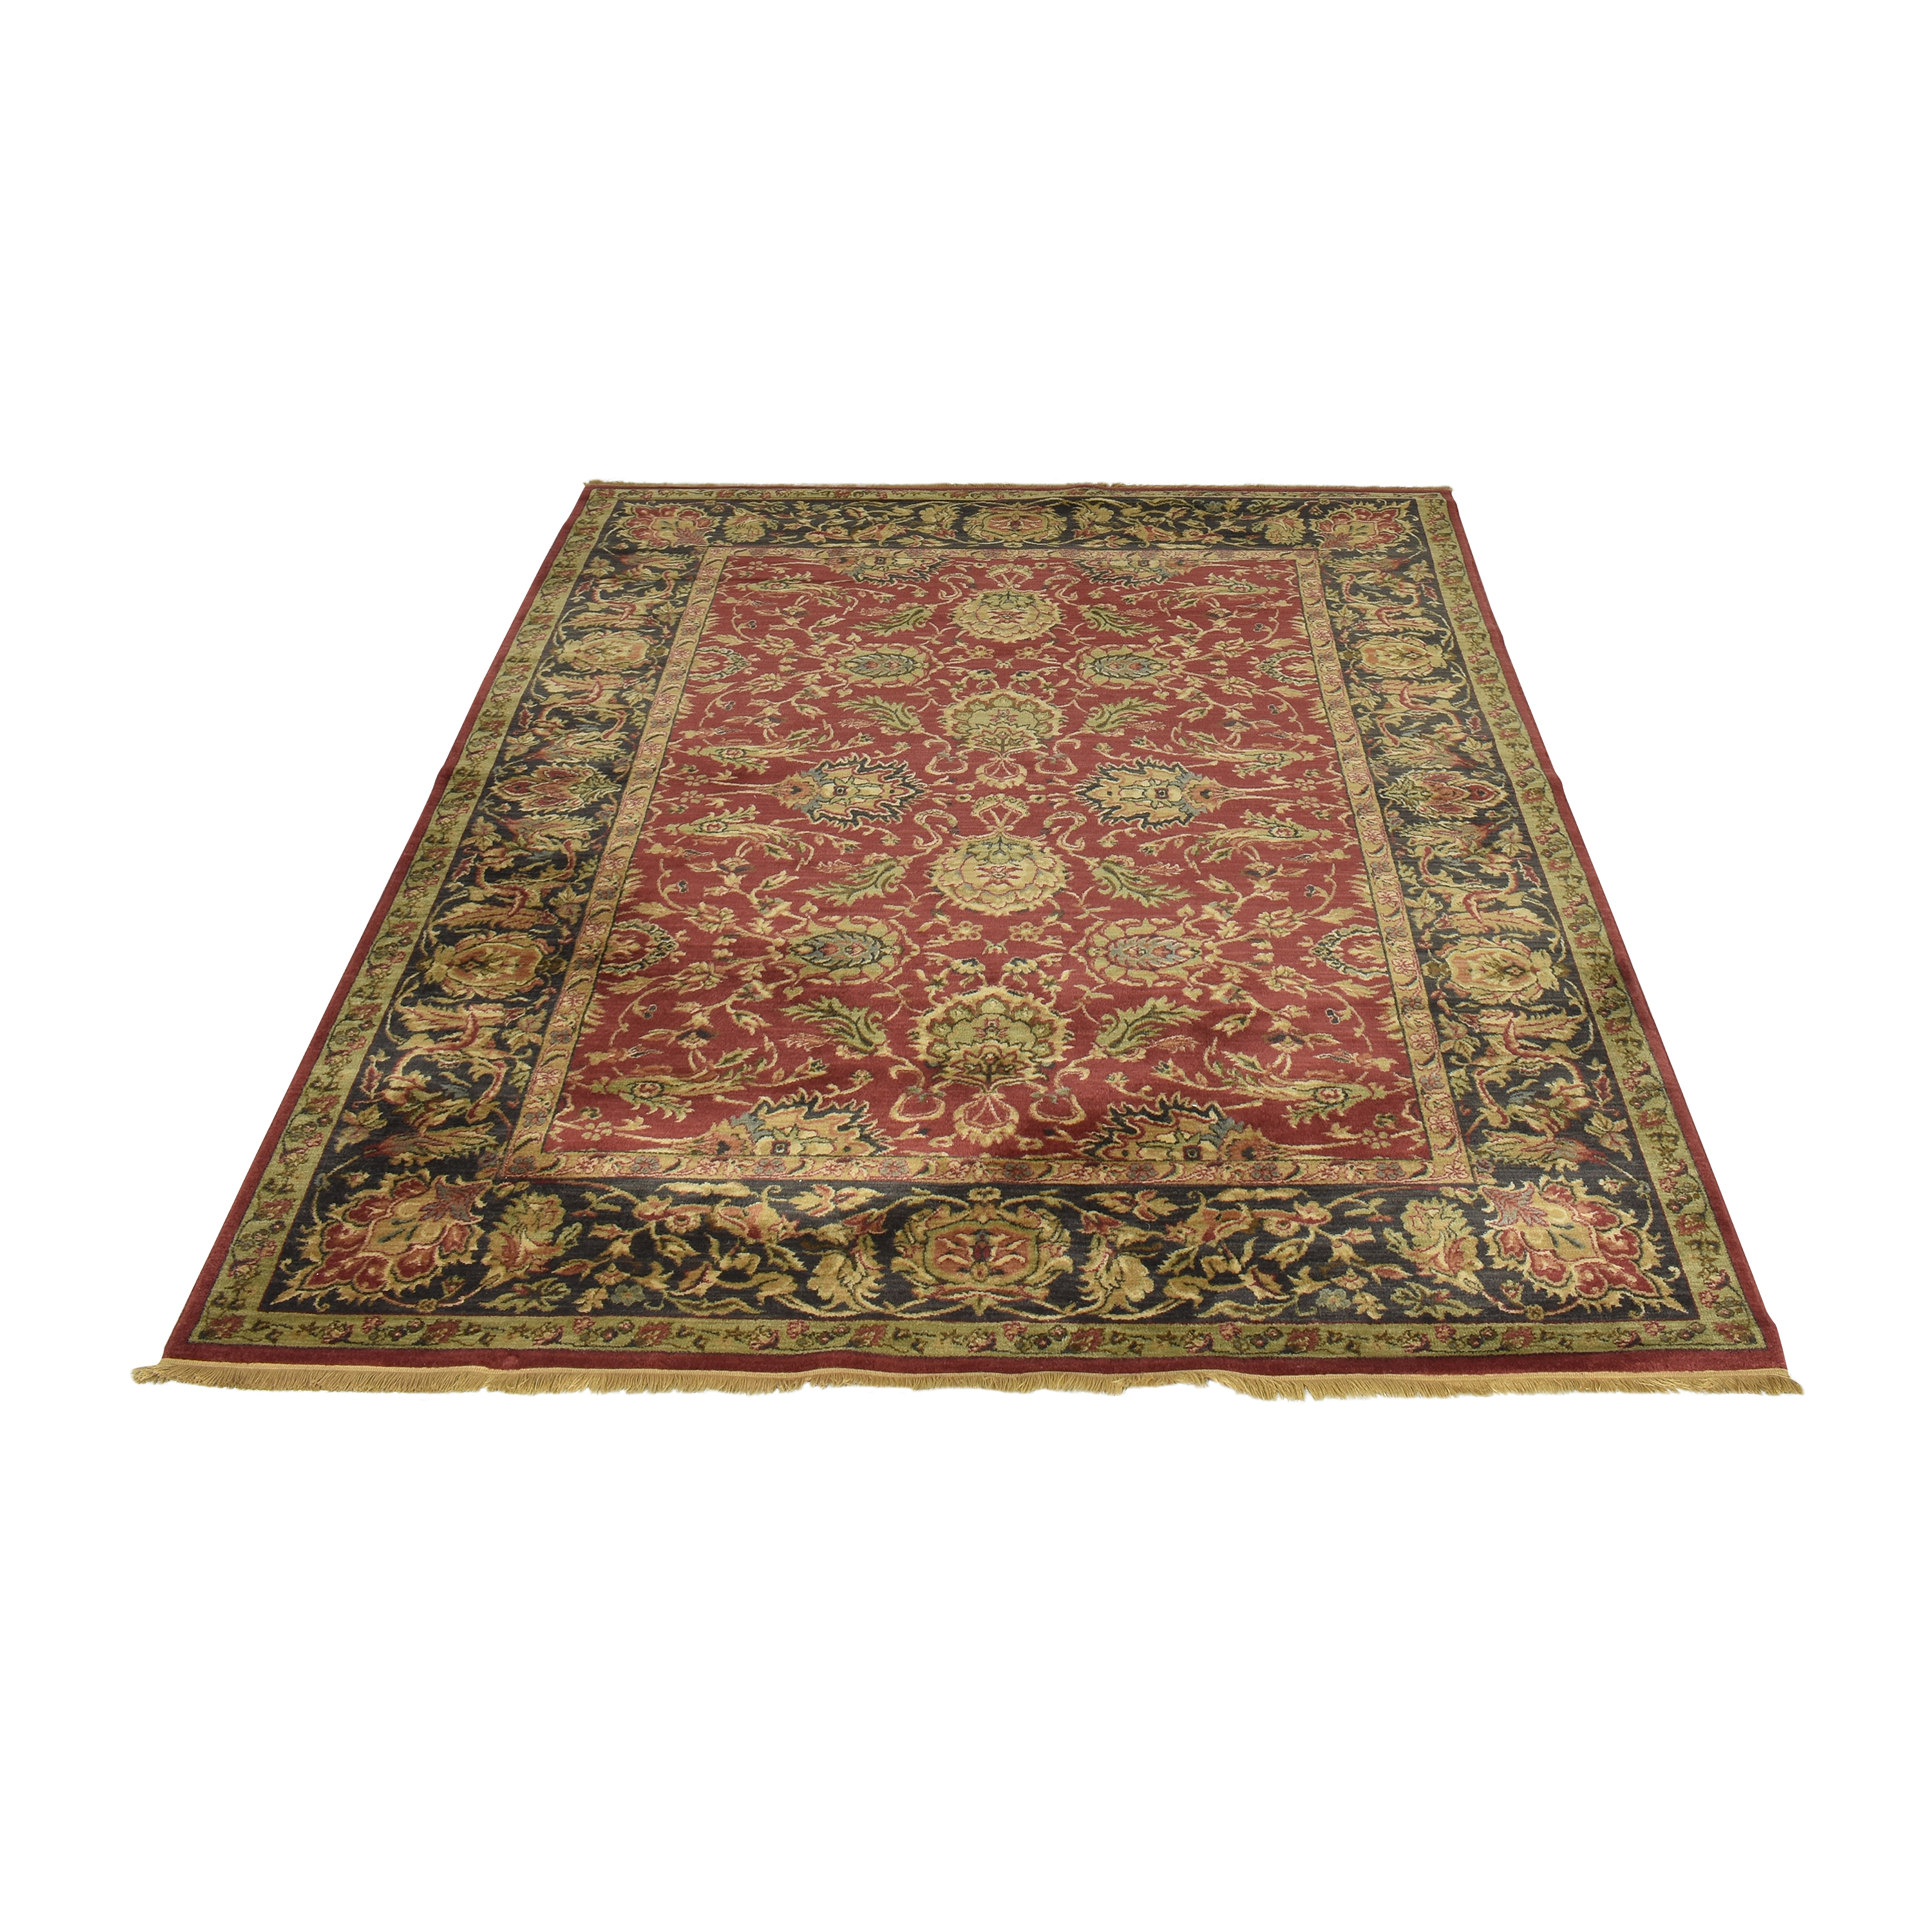 Persian-Style Area Rug for sale